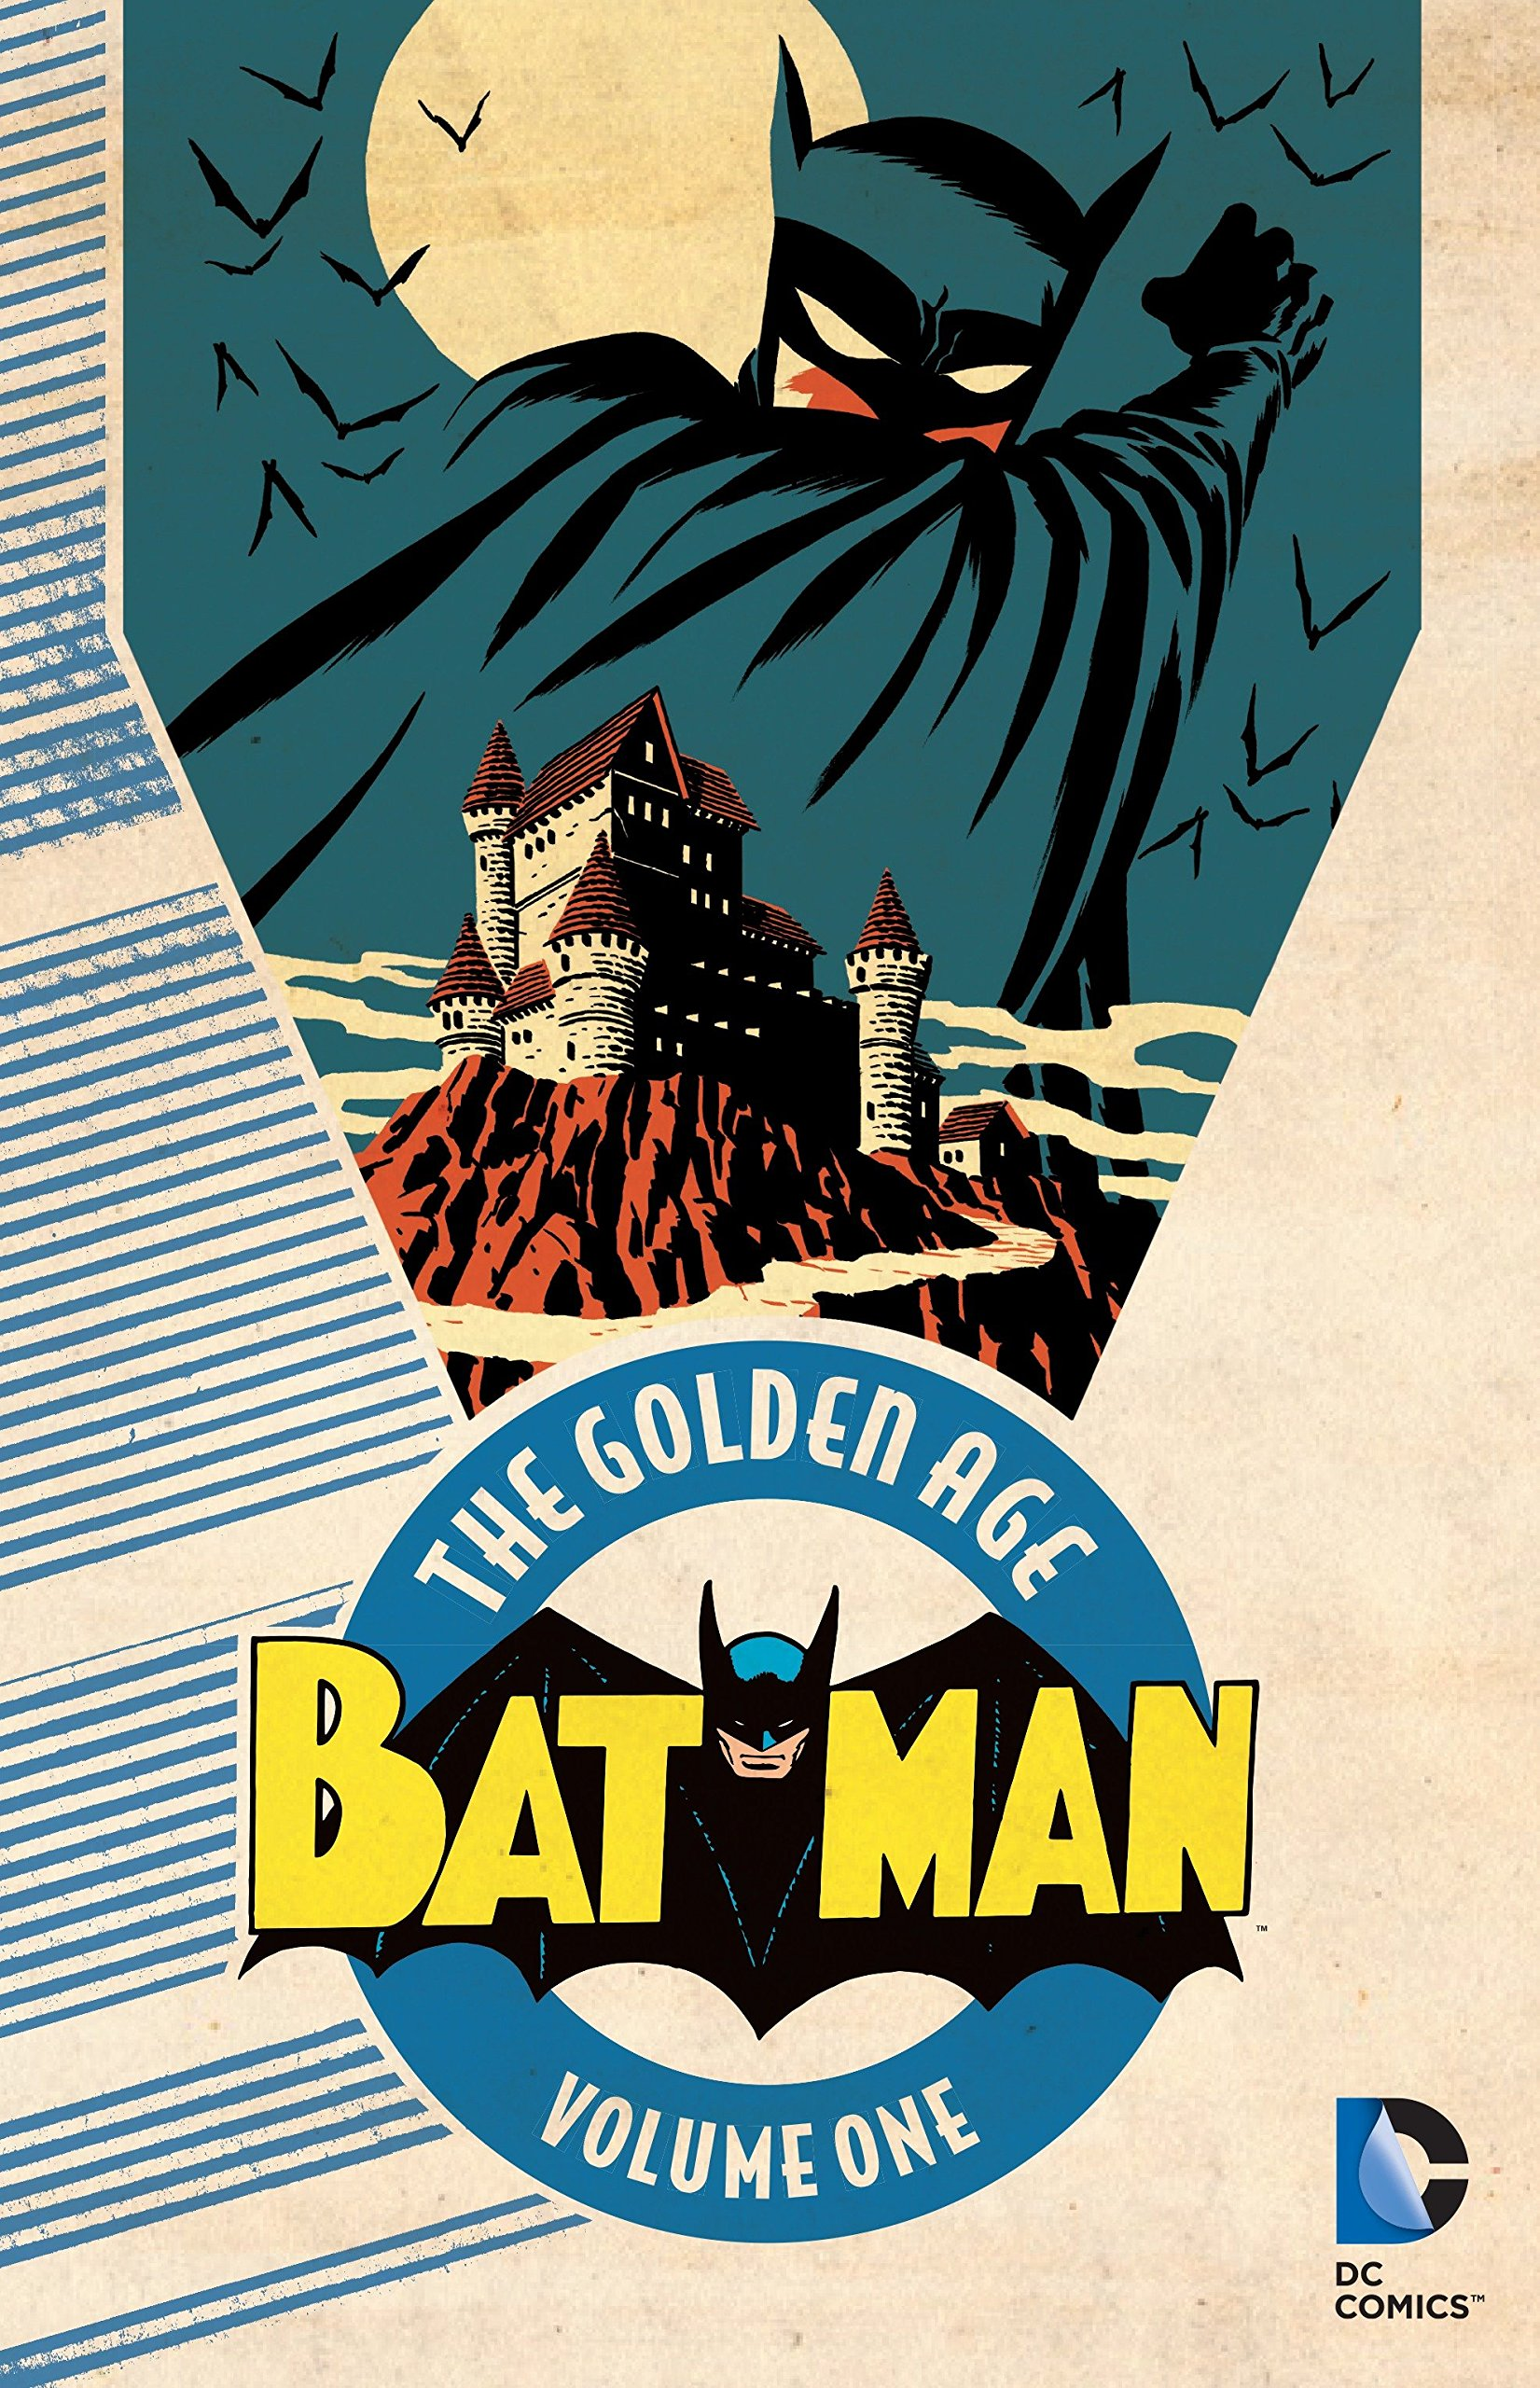 EASTERN GOLDEN AGE COMICS COLLECTION 41 ISSUES ON CD